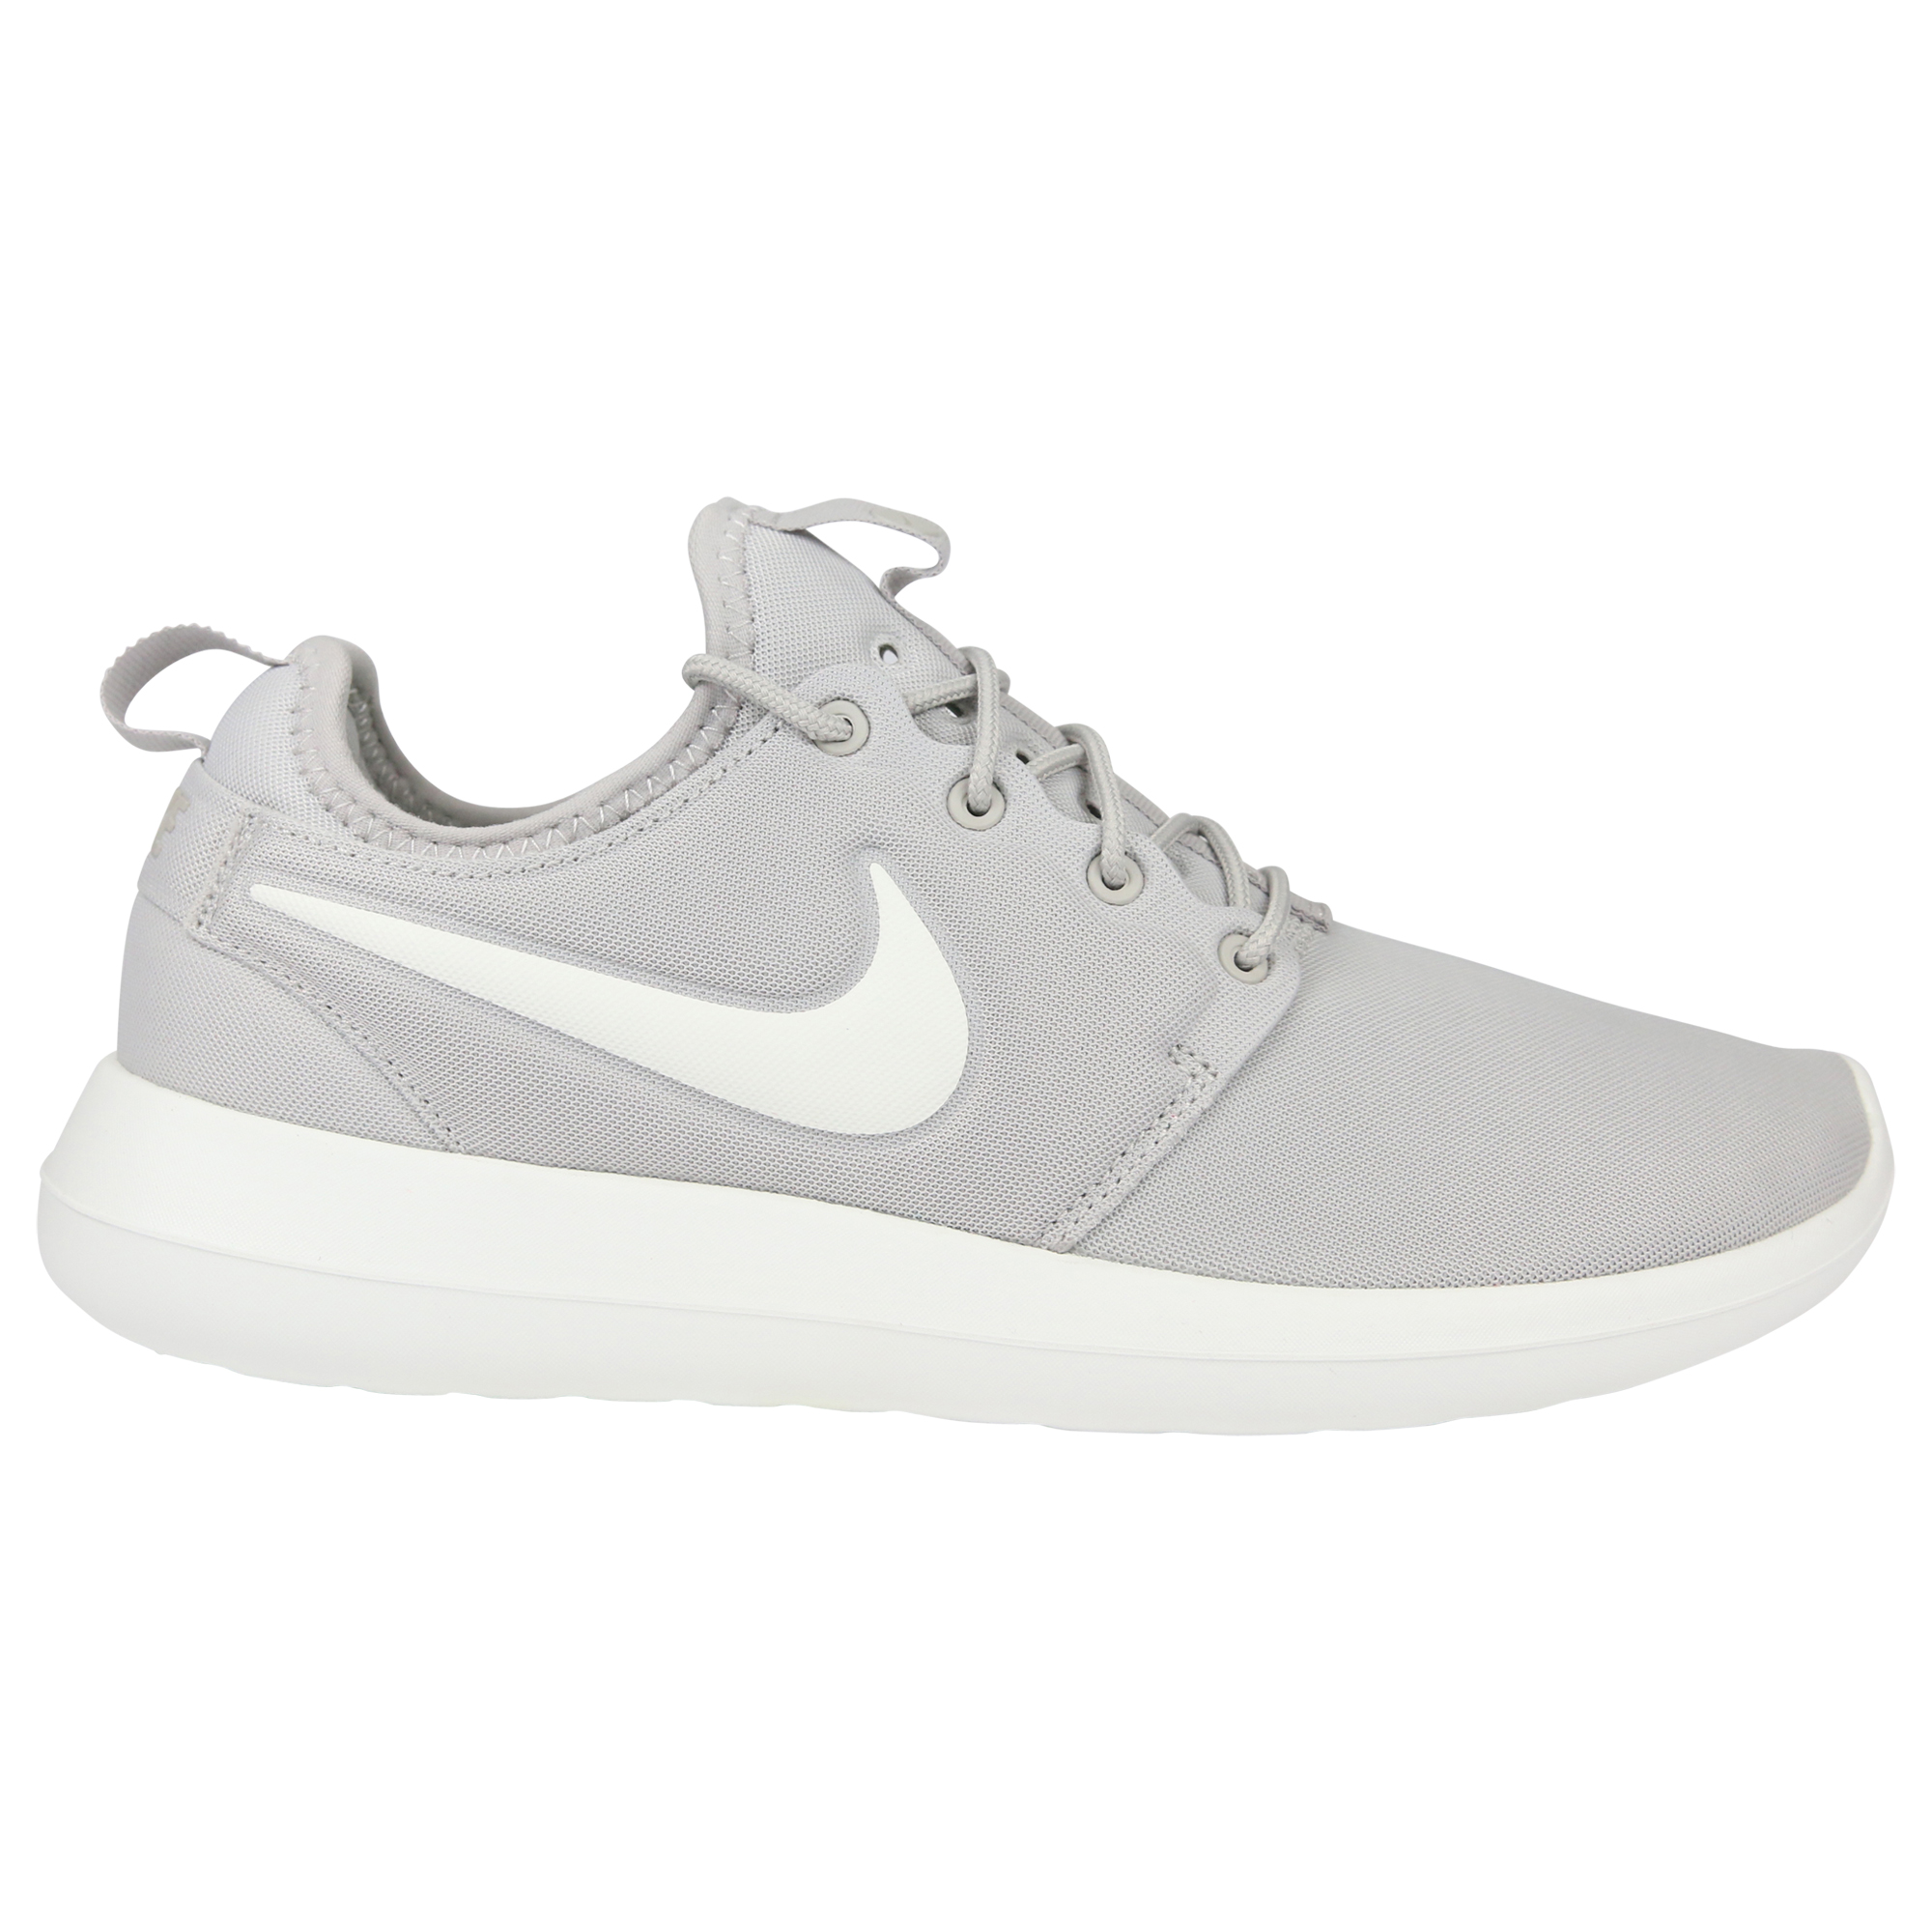 nike roshe two run schuhe turnschuhe sneaker damen ebay. Black Bedroom Furniture Sets. Home Design Ideas